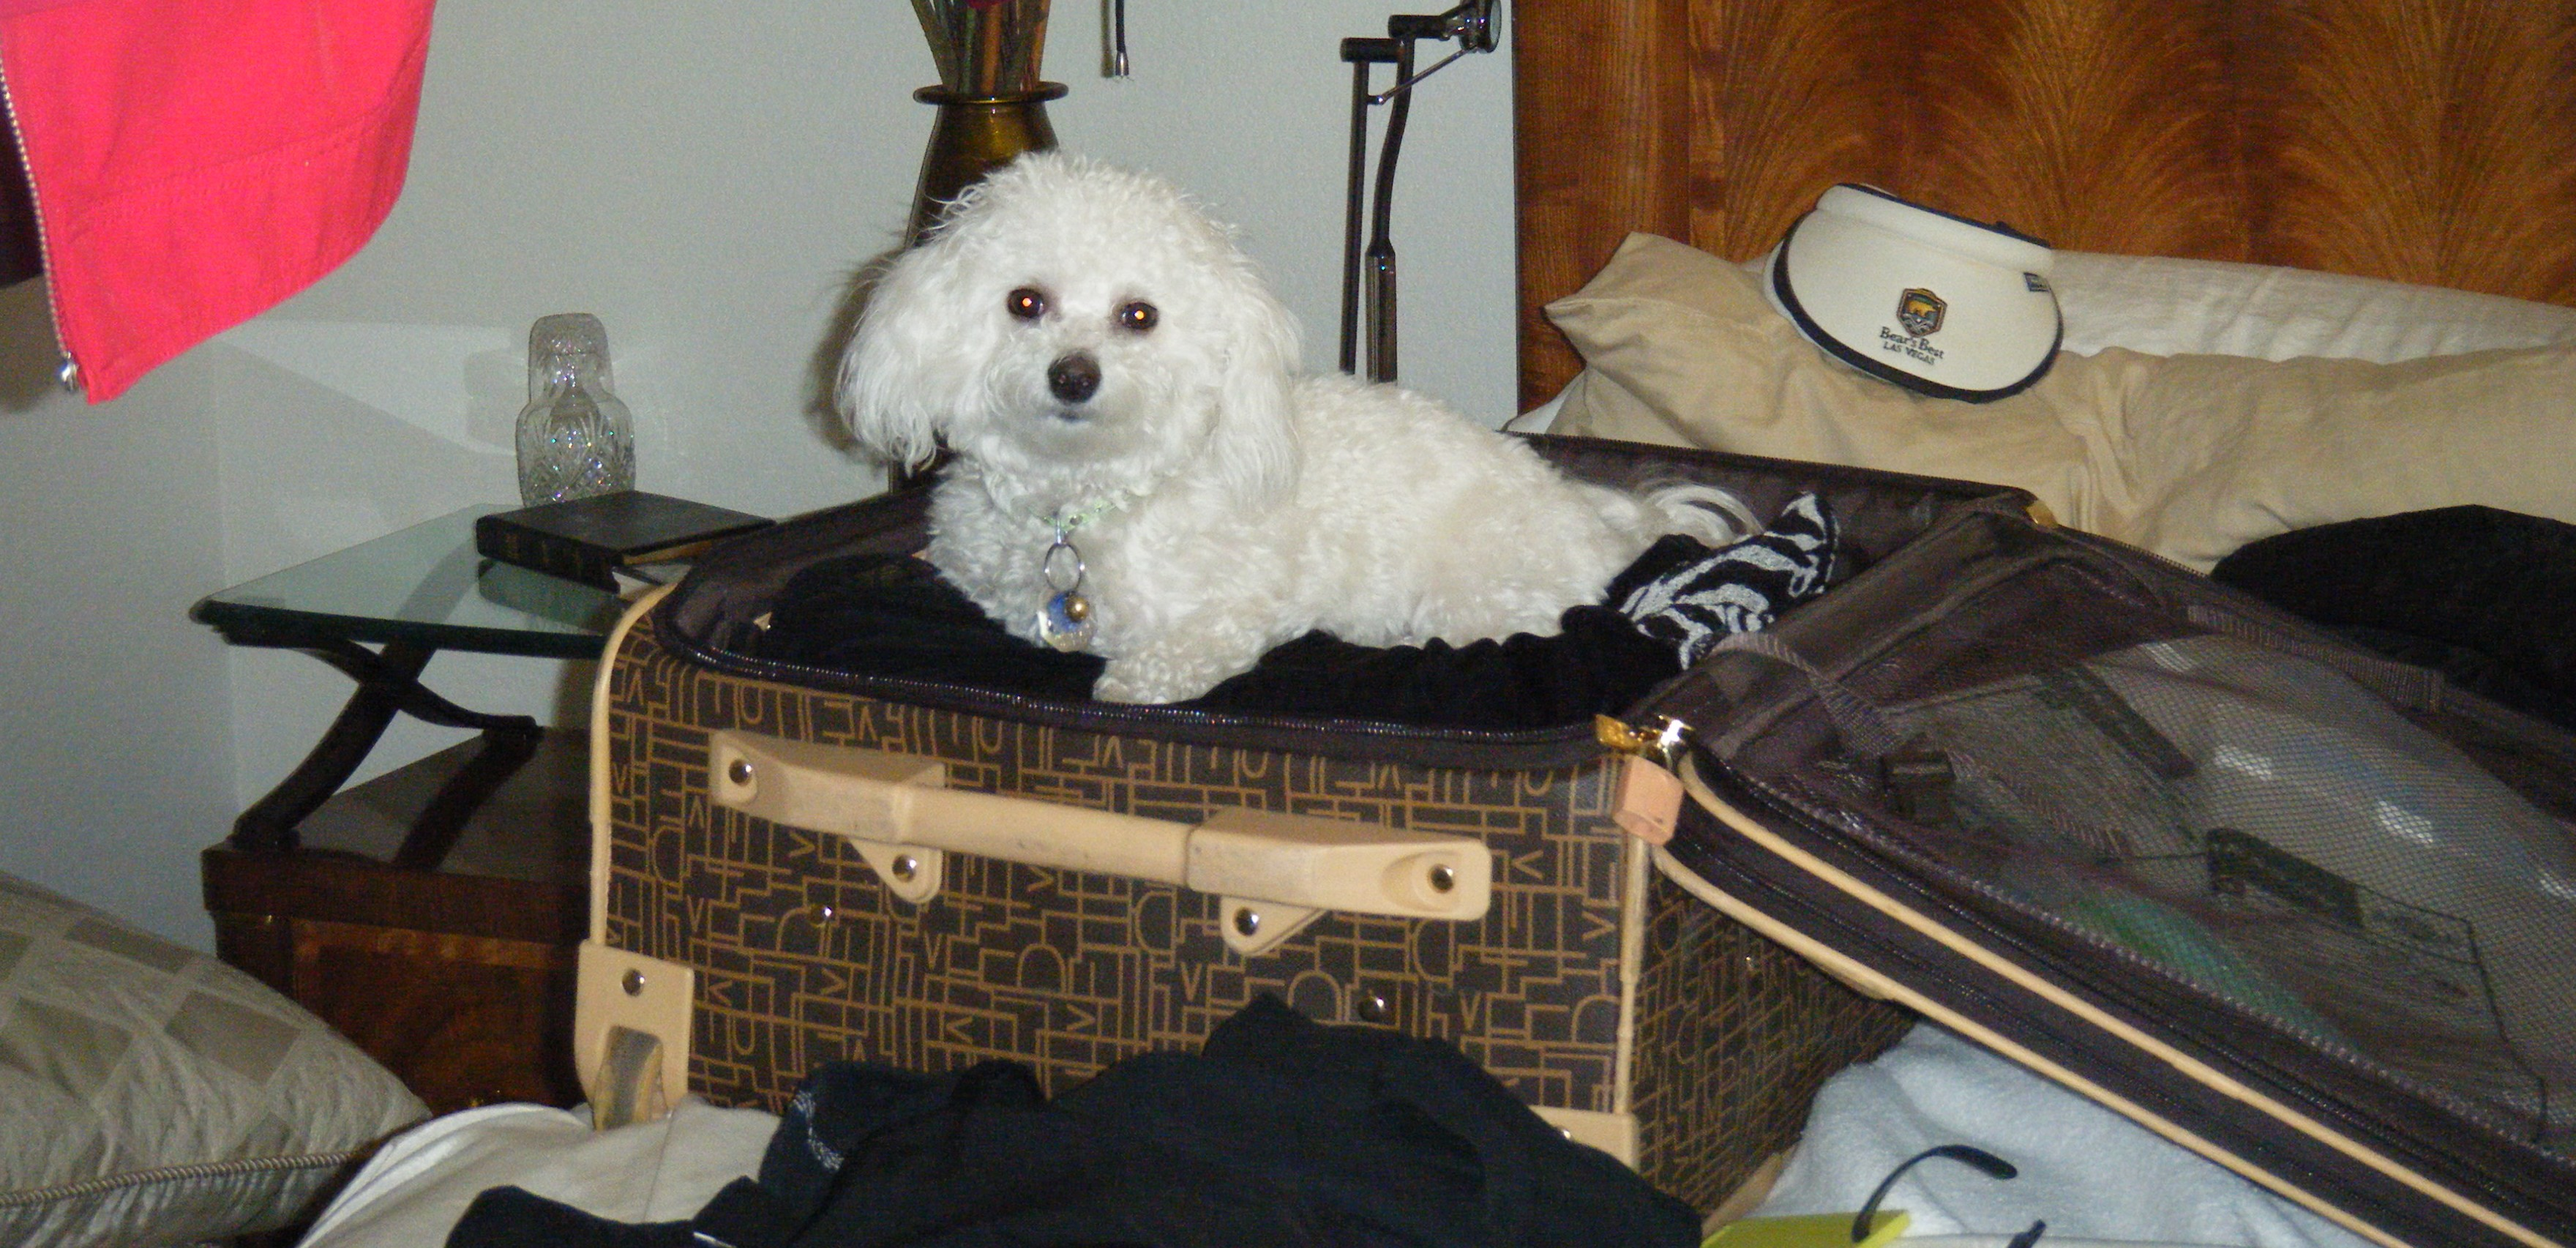 Sash in suitcase